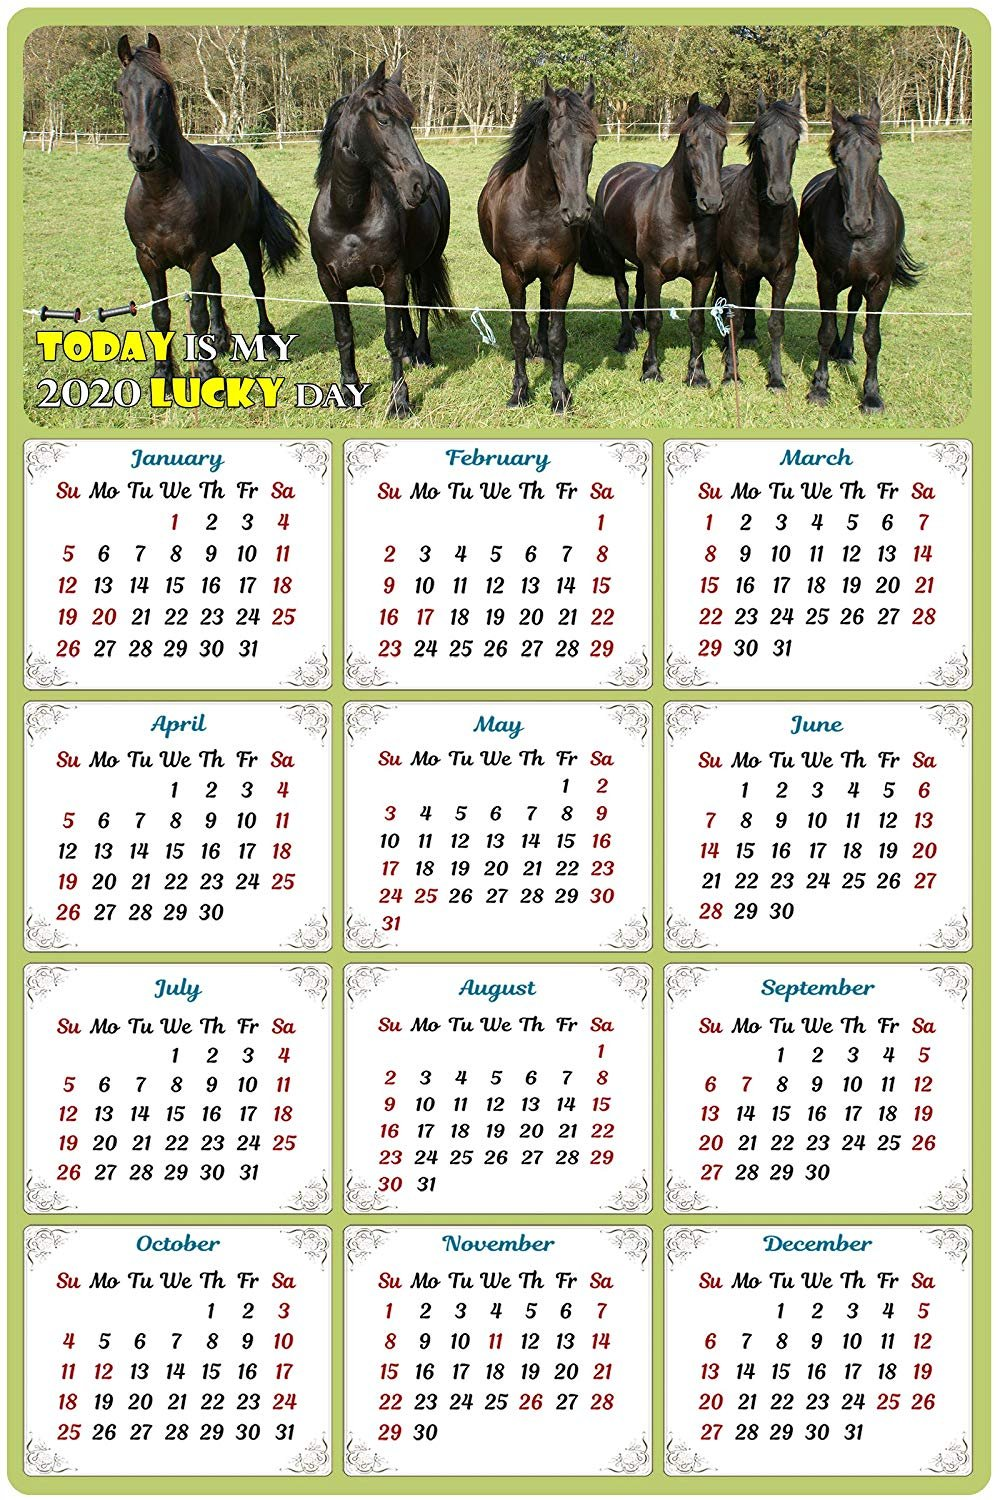 2020 Magnetic Calendar - Calendar Magnets - Today is My Lucky Day - Horses Edition #006